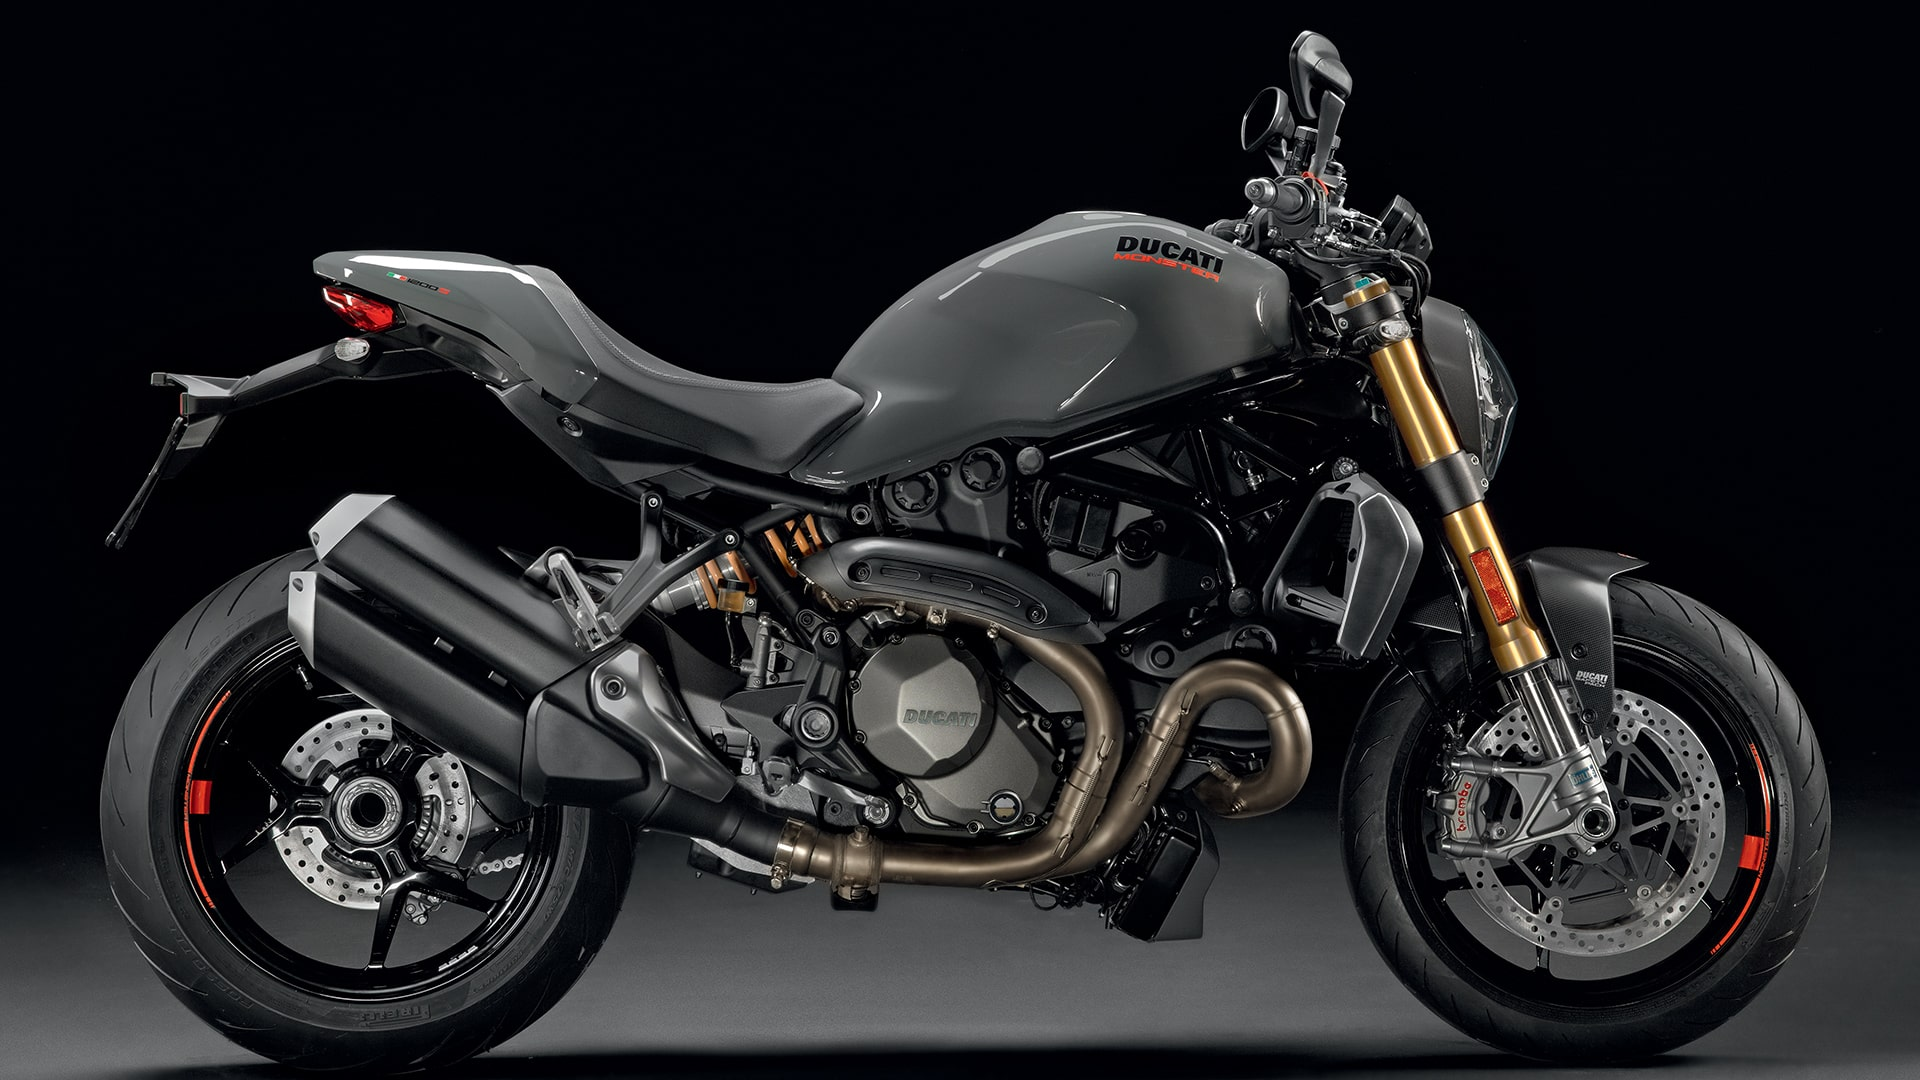 Ducati convoca Monster 1200S e SuperSport S para recall